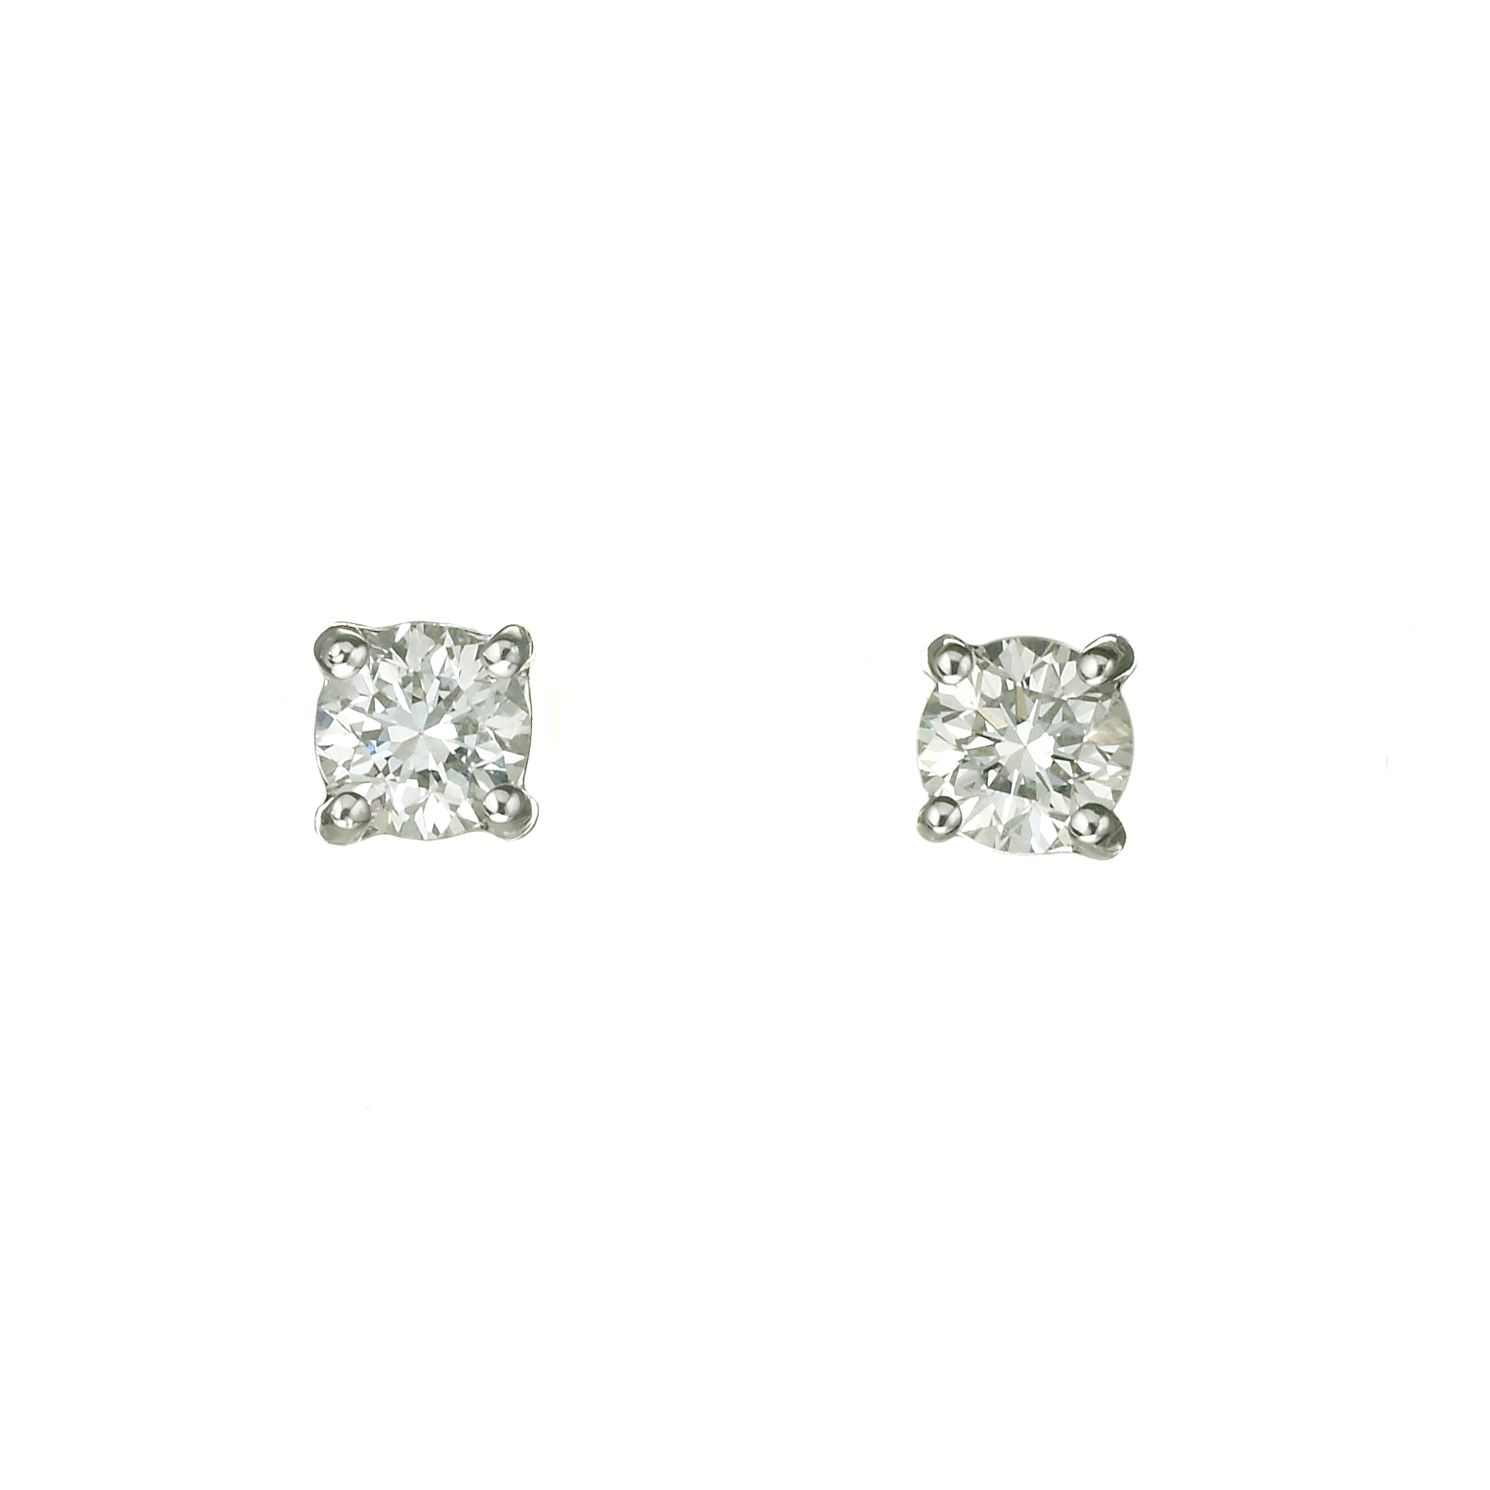 18ct White Gold 0.40ct Diamond Stud Earrings - Product number 5972612